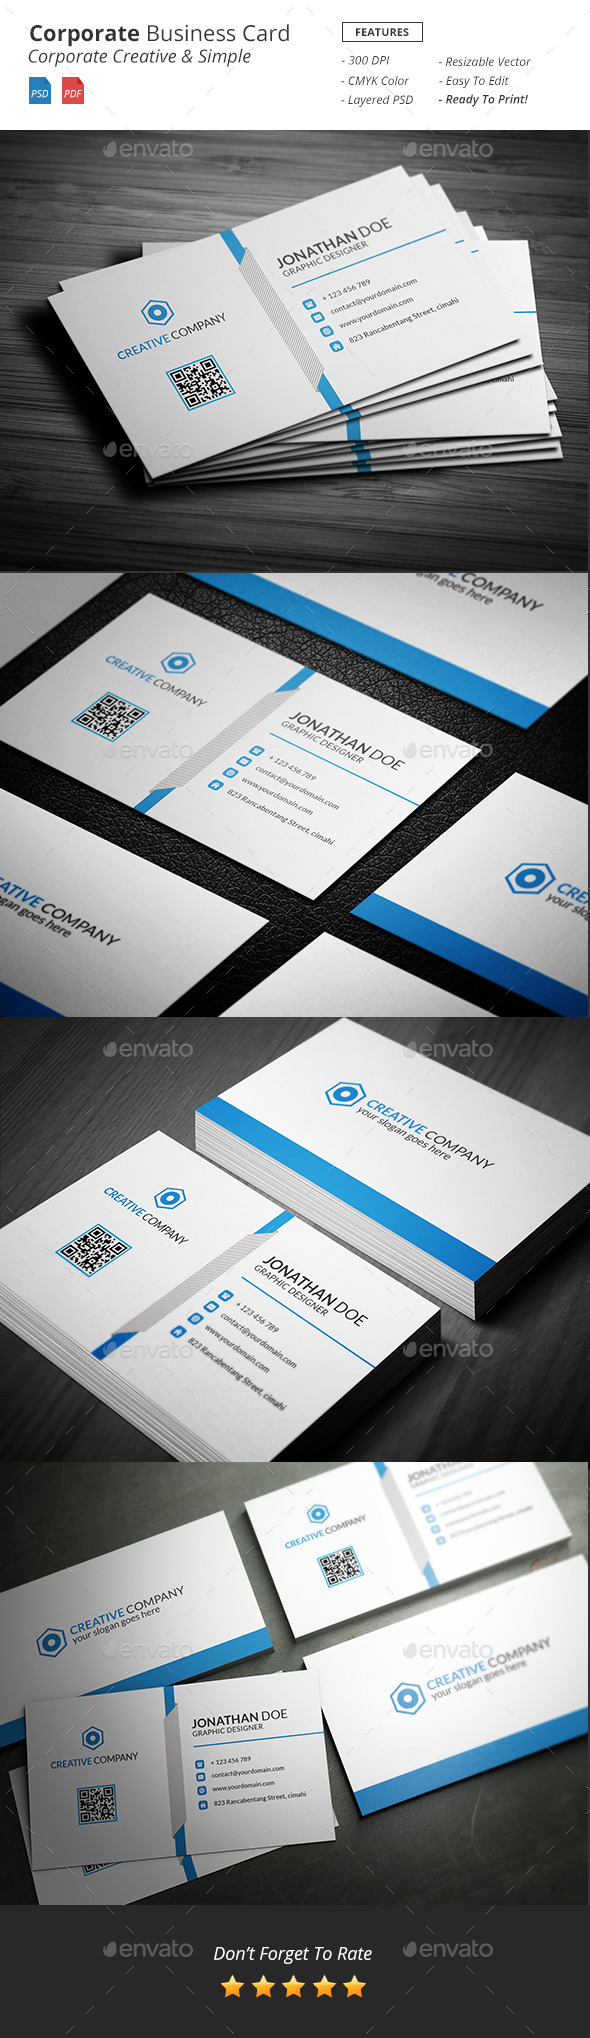 GraphicRiver Corporate Business Card 11934084